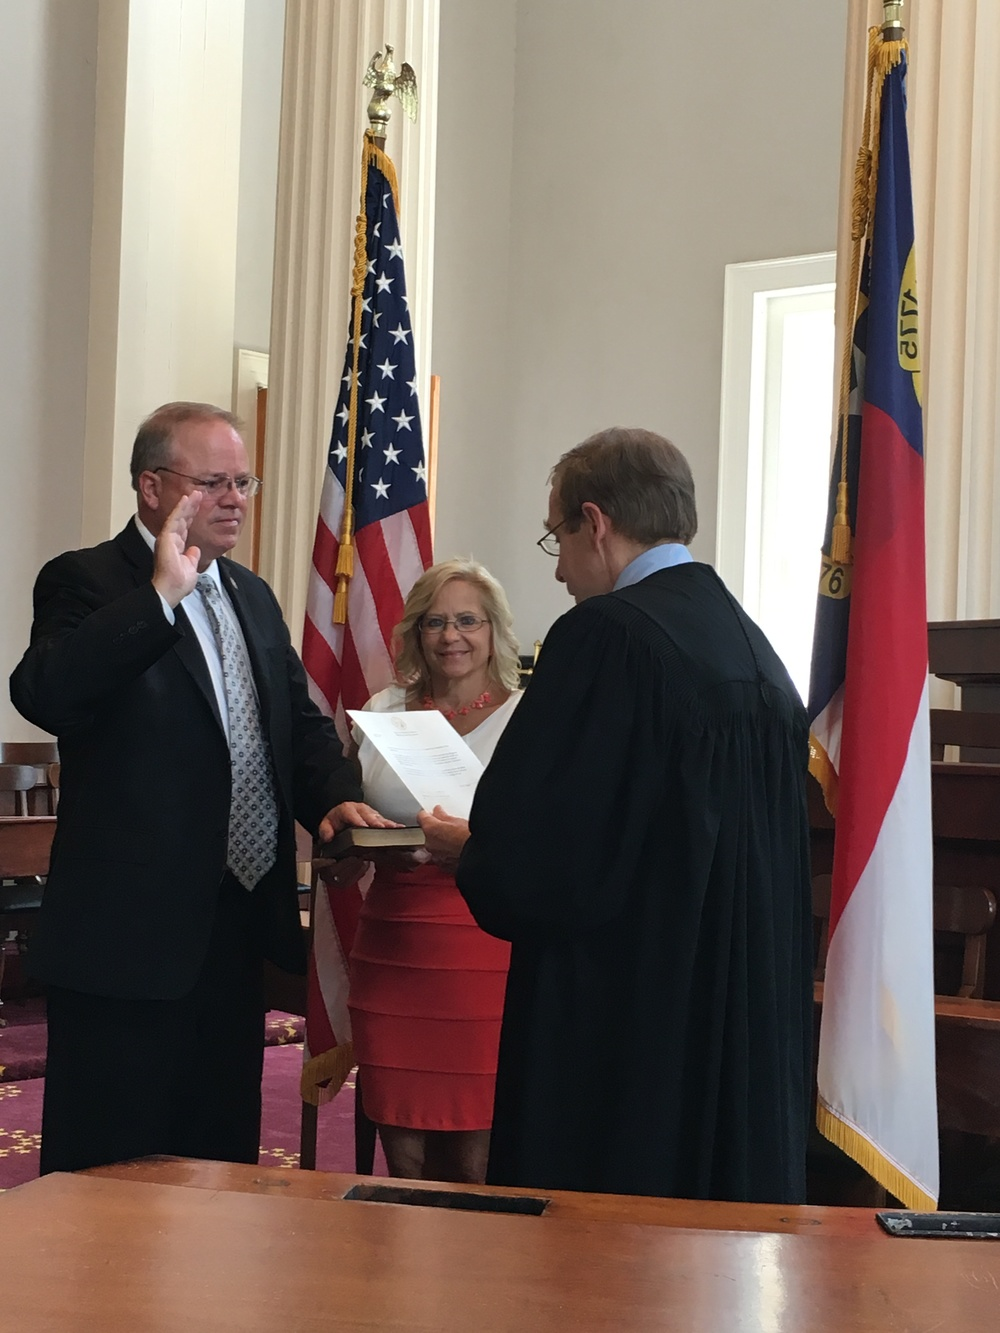 Administering the oath of office to Fred Steen, newest member of North Carolina's Board of Review, July 27, 2016.